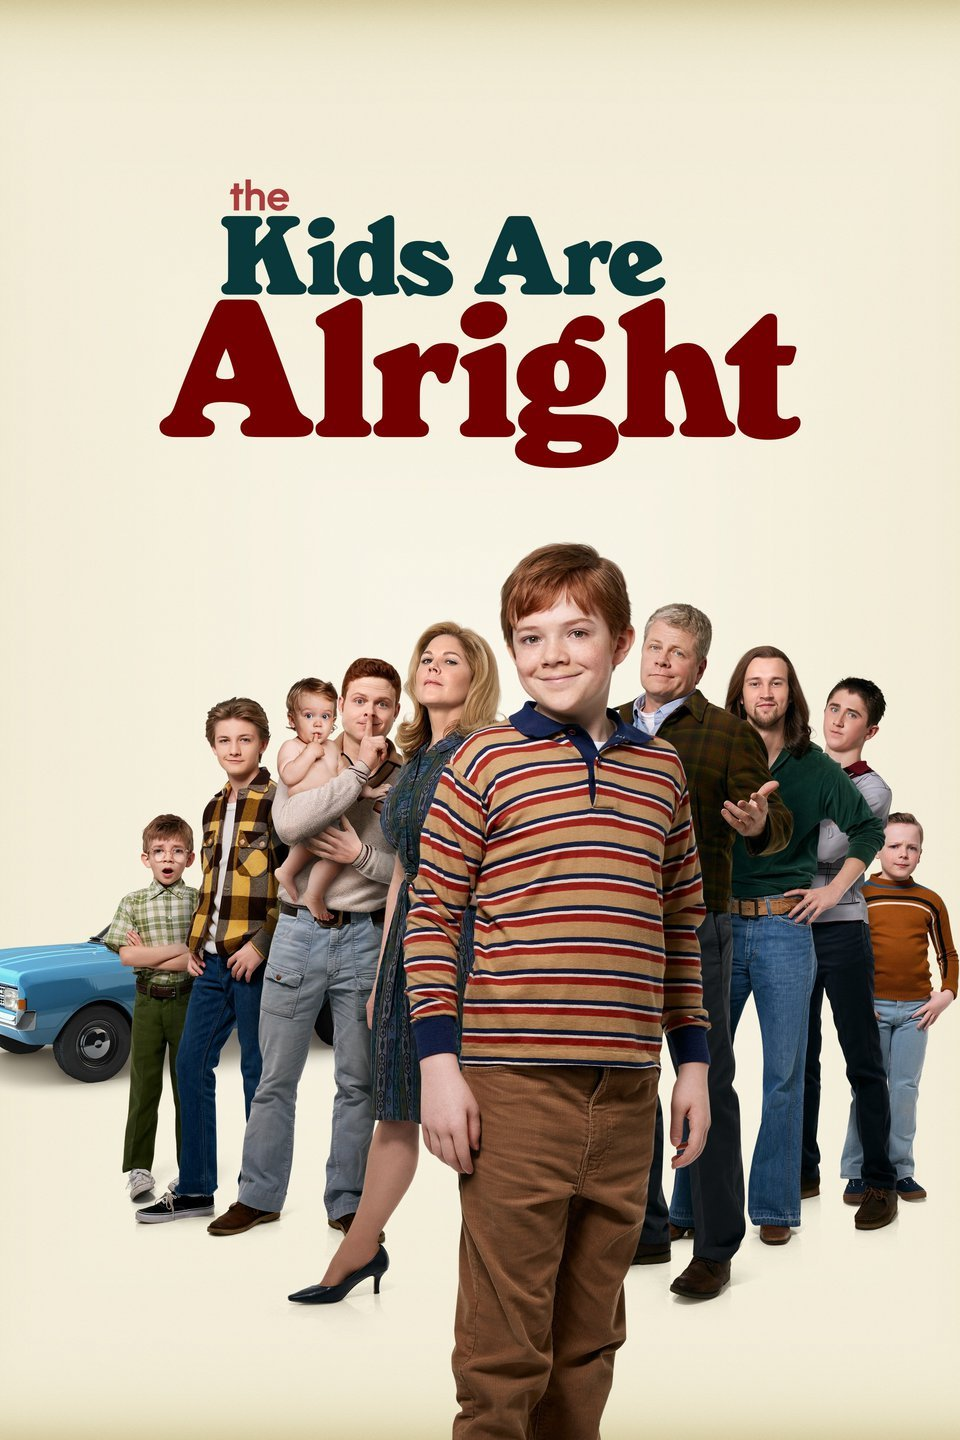 The kids Are alright - Featured Bugle